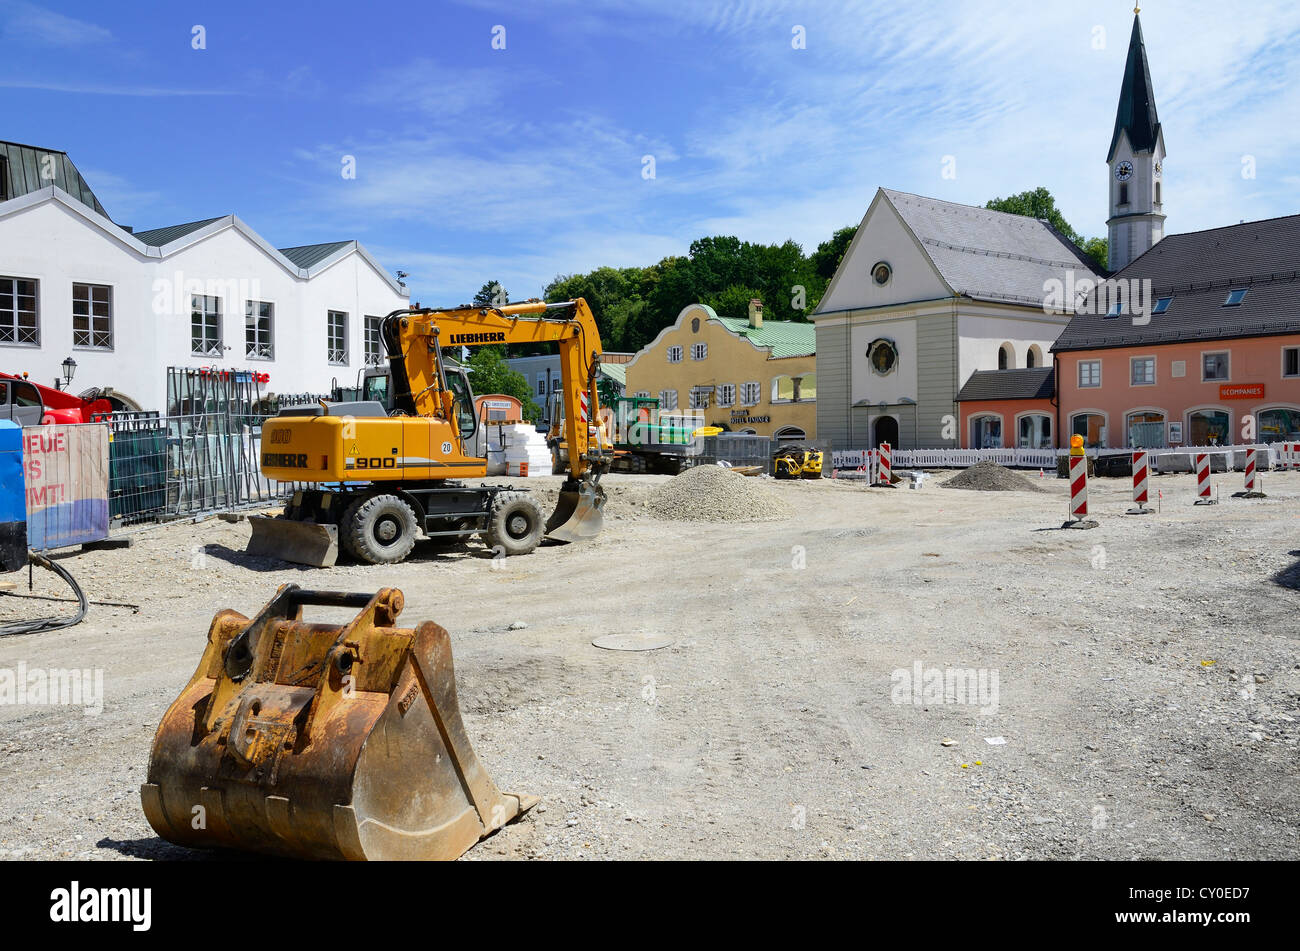 Construction work for traffic calming, city centre of Bad Aibling, Bavaria - Stock Image